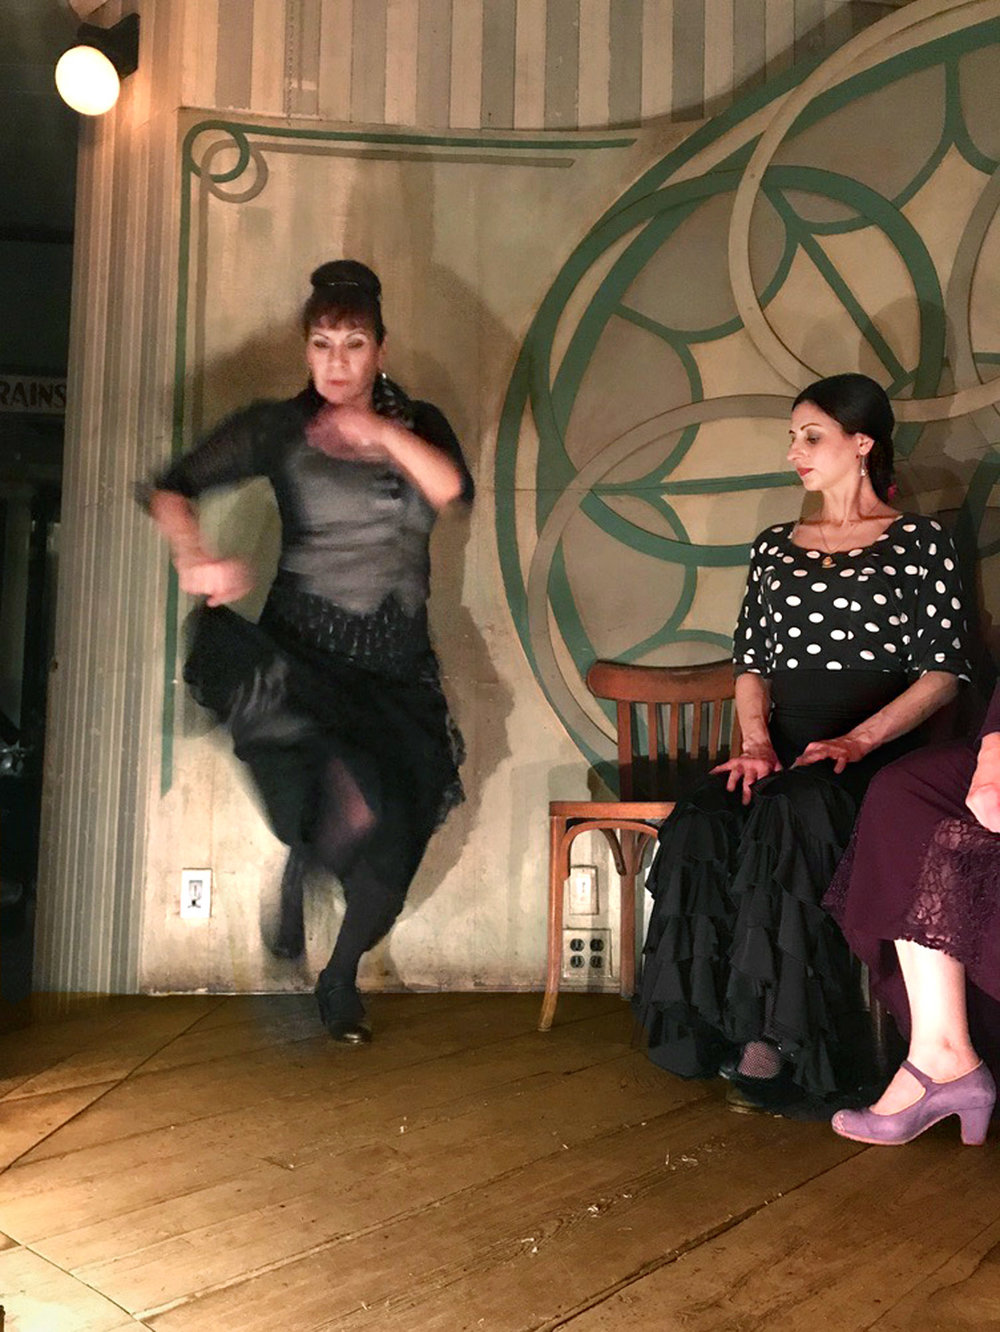 La Conja Flamenco at St. Mazie Bar & Supper Club, Williamsburg